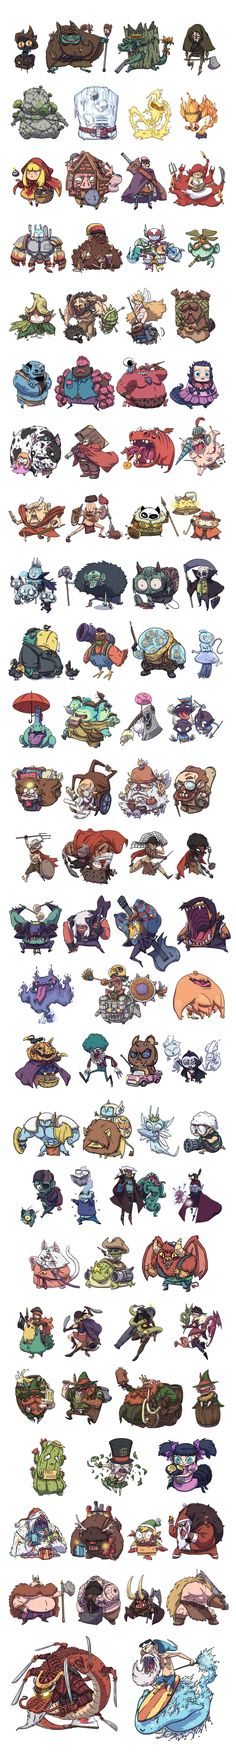 Character designs compilation by BattlePeach on DeviantArt ★ || CHARACTER DESIGN REFERENCES • Find us on www.facebook.com/CharacterDesignReferences and www.pinterest.com/characterdesigh Remember that you can join our community on www.facebook.com/groups/CharacterDesignChallenge and participate to our monthly Character Design contest || ★